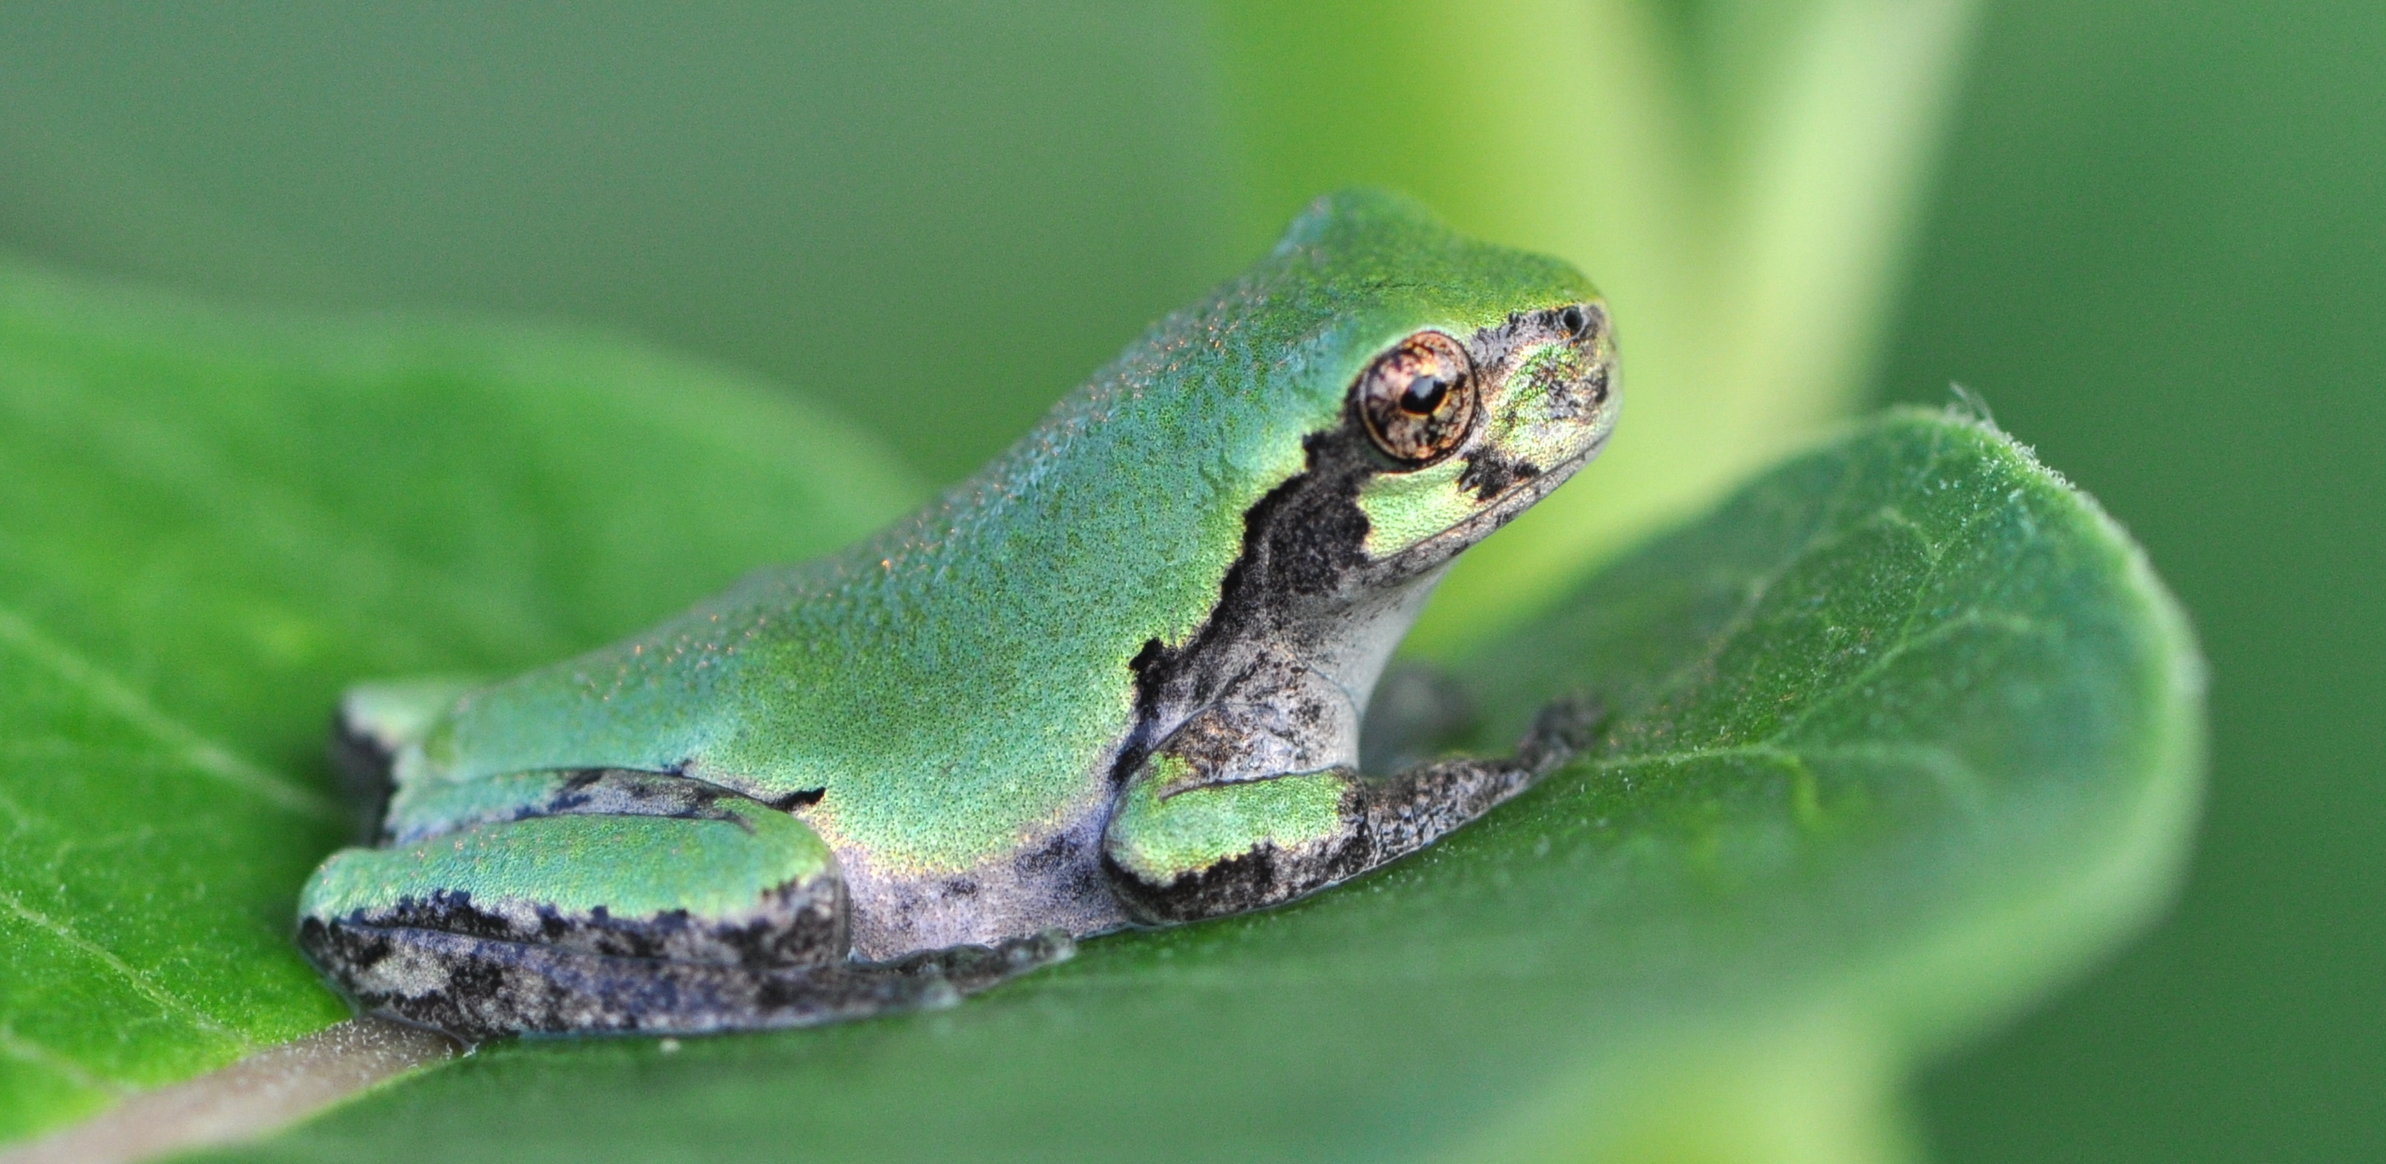 Eastern gray tree frog.  Photo by USFW Service.